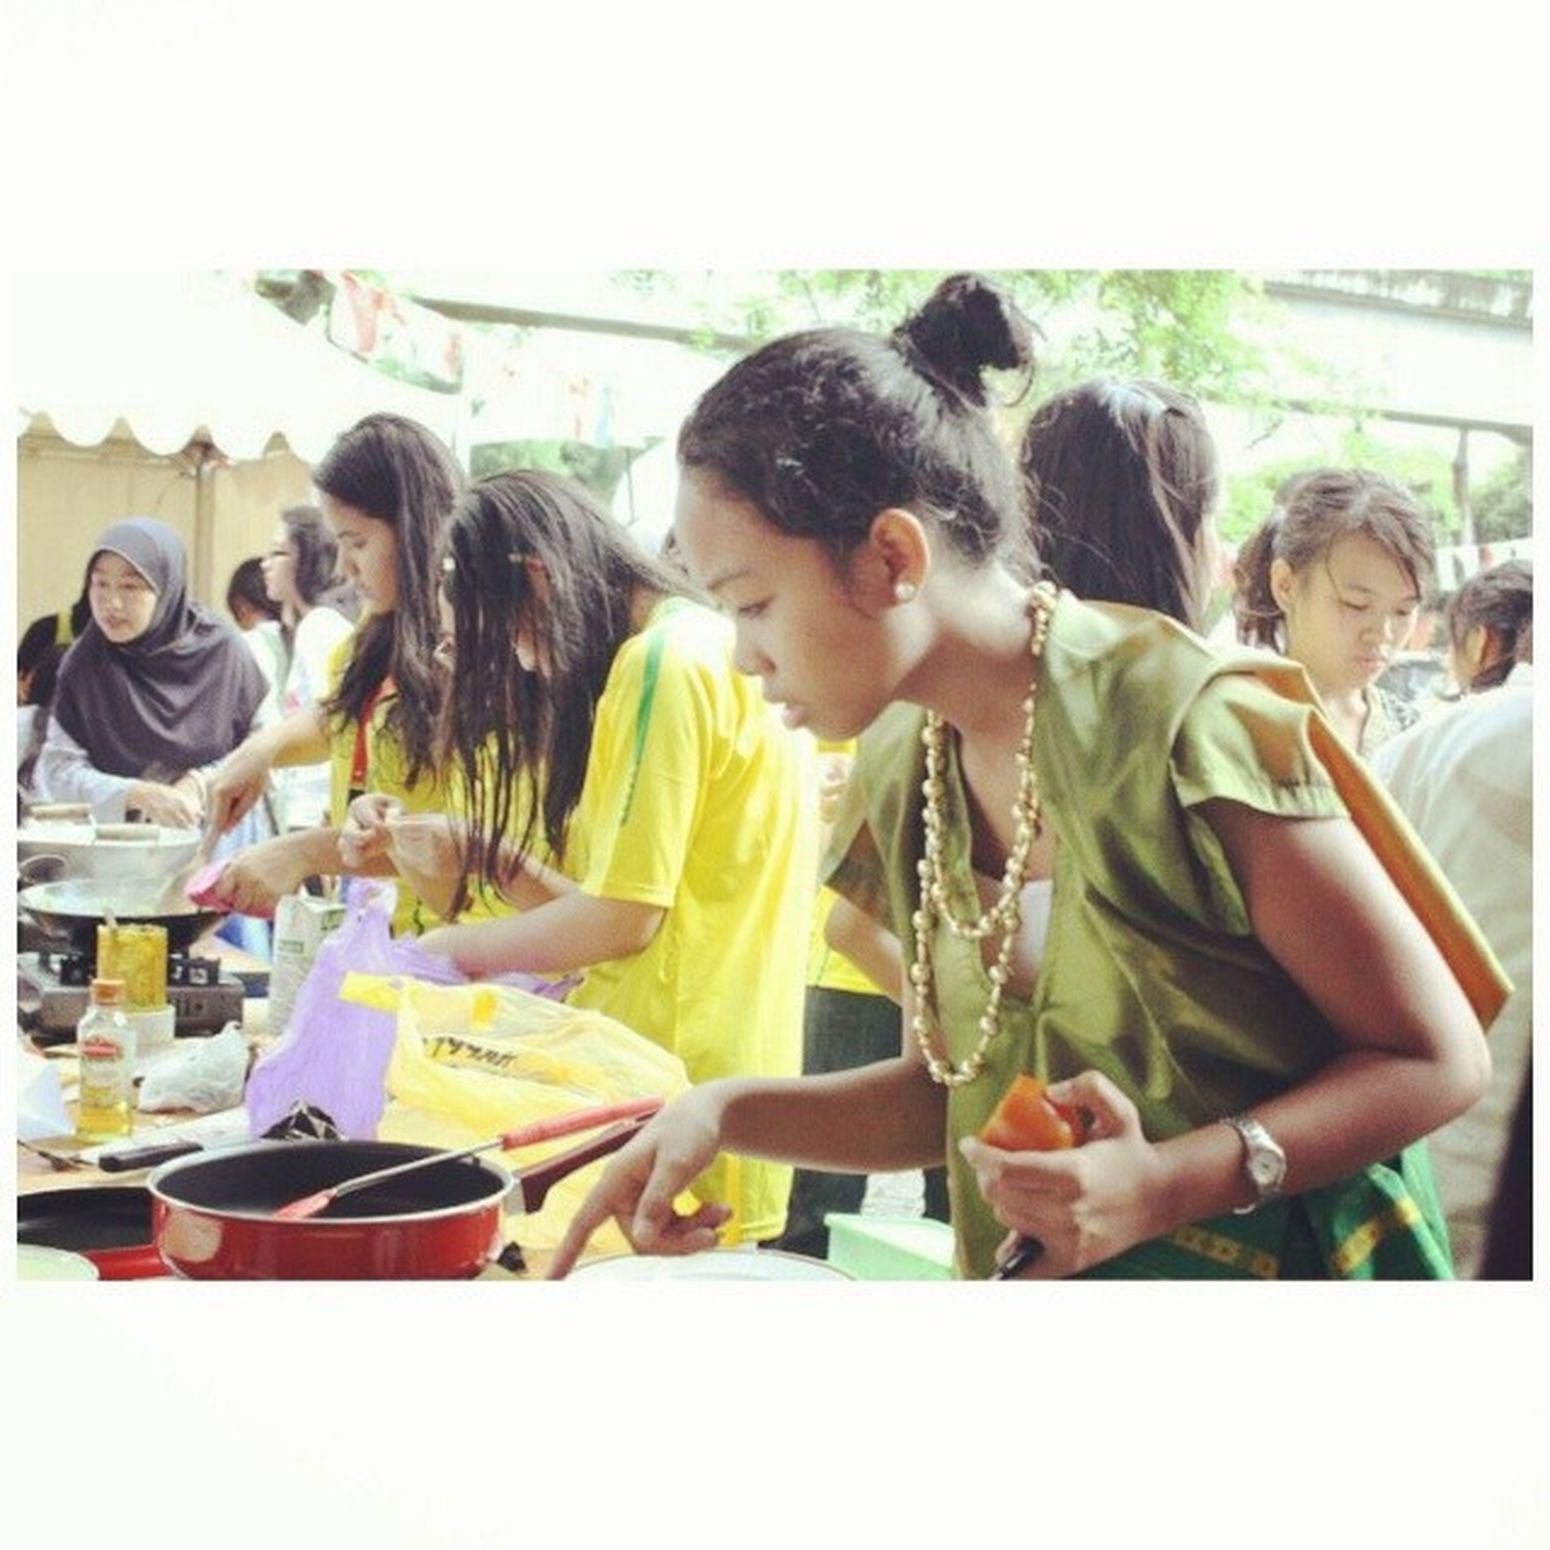 Wearing traditional costume at school cooking comp., 2011. Won at 2nd place lol. BajuBodo